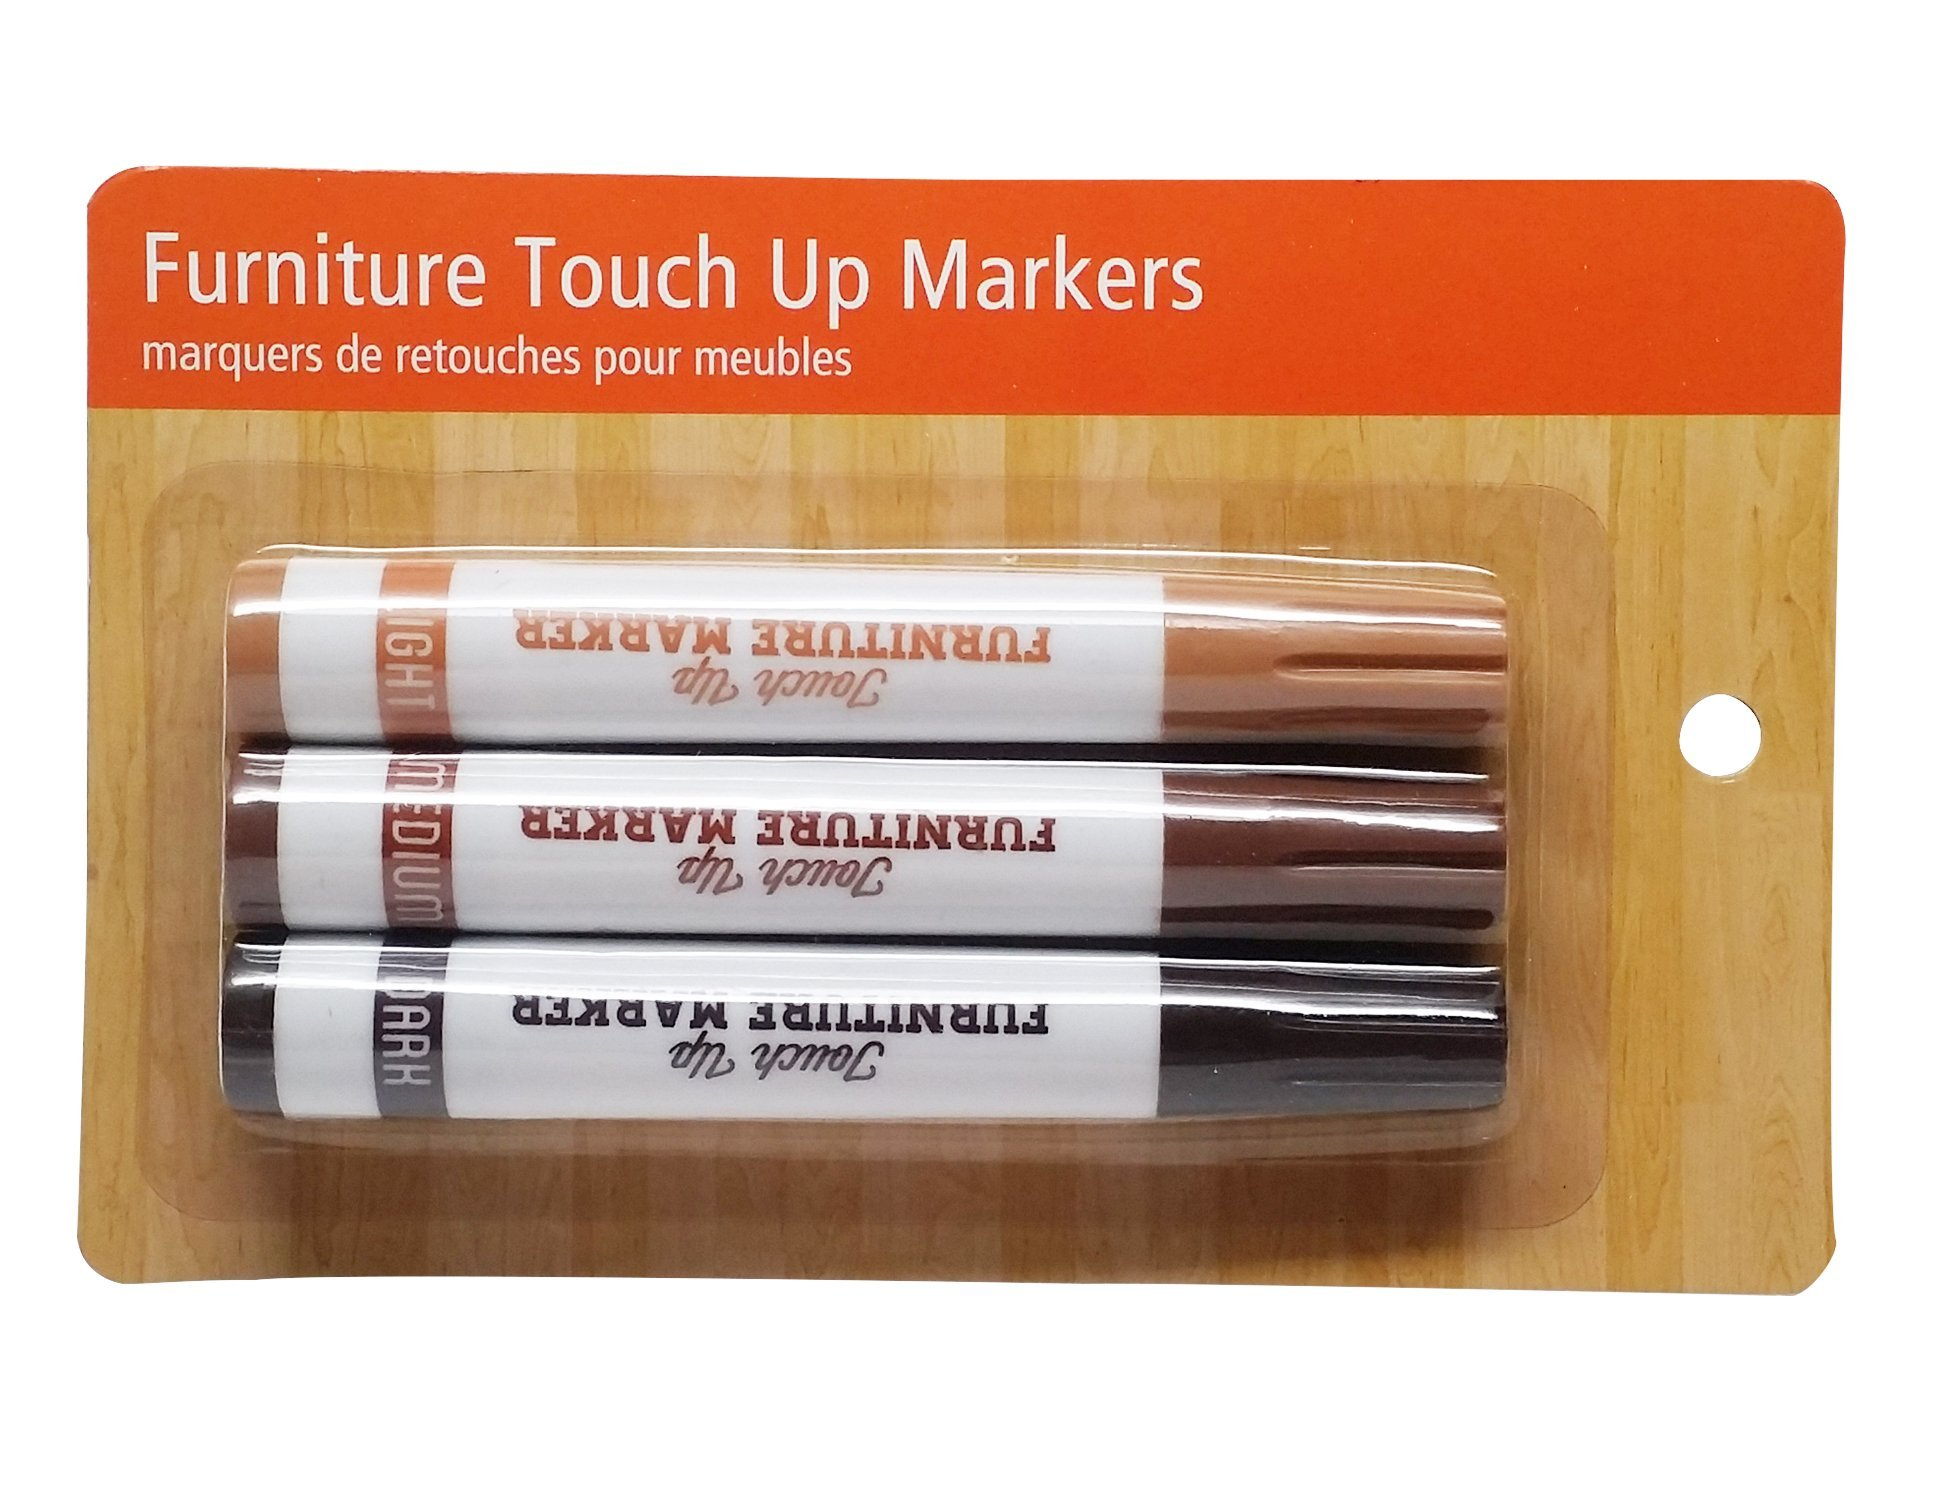 Furniture Touch up Markers, 3 Color Finishes by Good Living (Image #1)